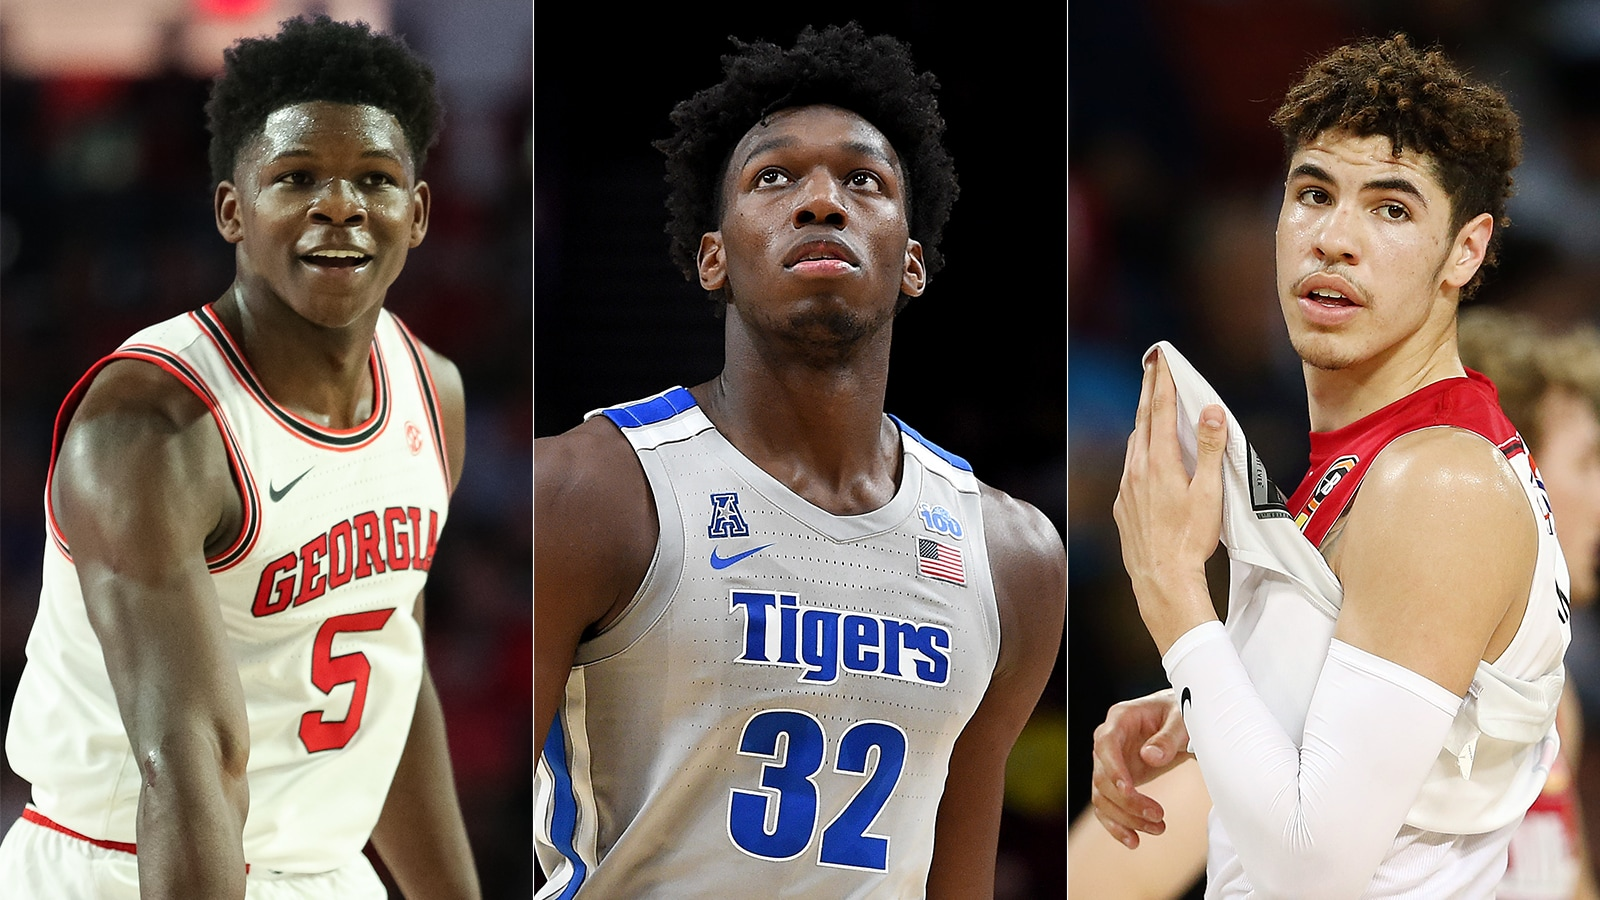 Anthony Edwards, James Wiseman, and LaMelo Ball